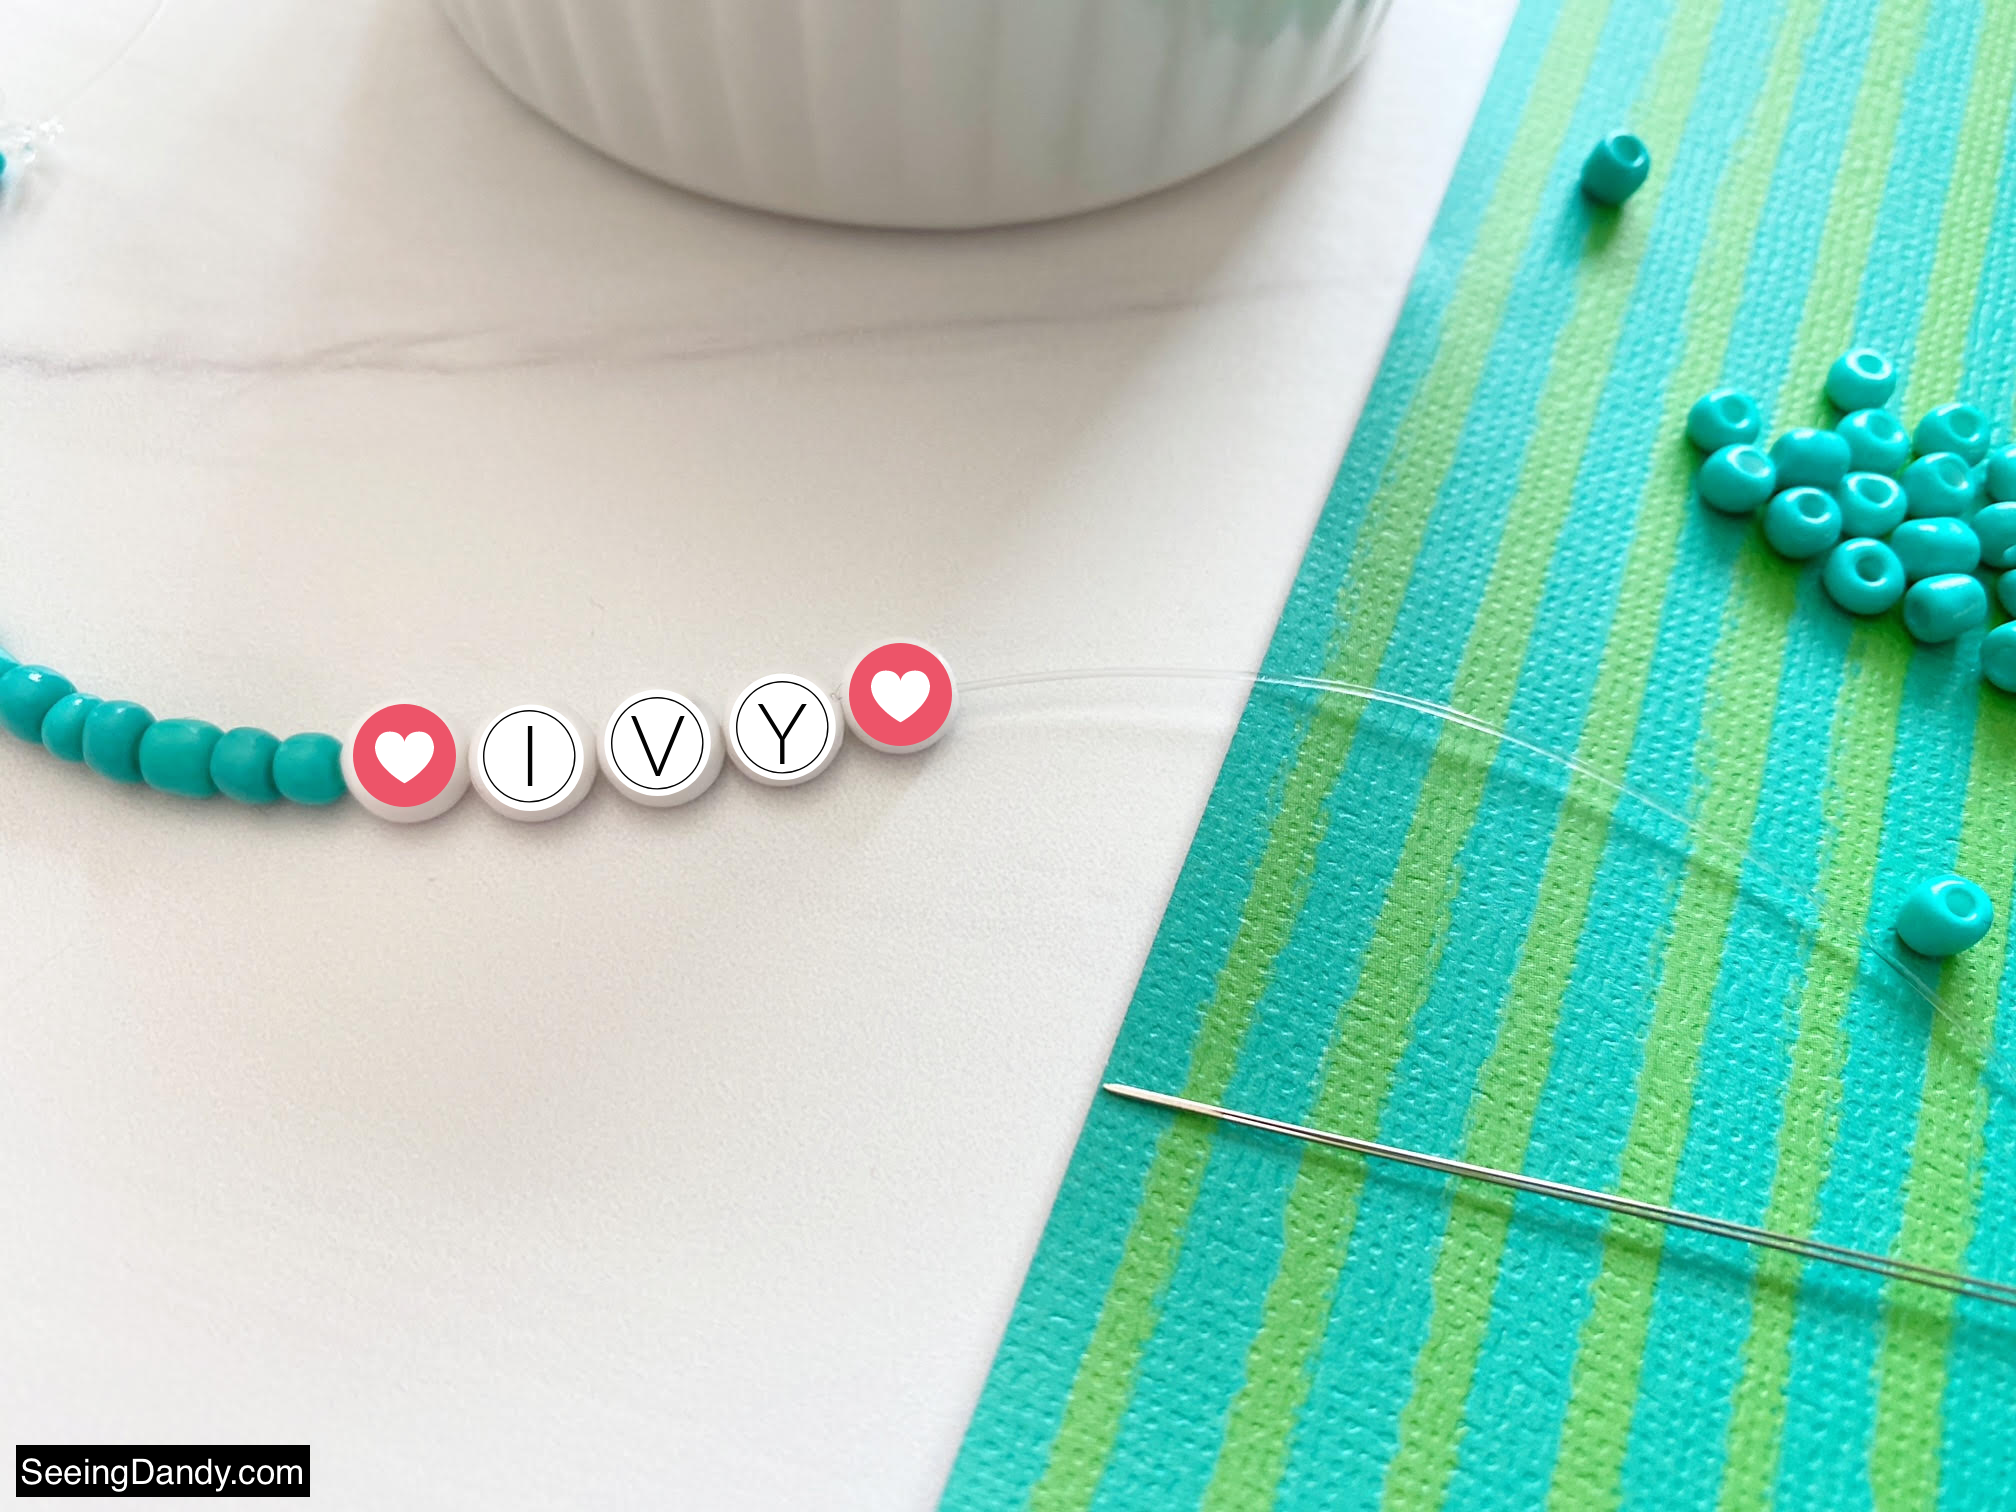 bracelet making bead needle, Beaded Alphabet Name Bracelets, beaded name bracelet, ivy name bracelet, heart letter beads, green blue stripe scrapbook paper, marble countertop, elasticity stretch bead cord, craft scissors, easy crafts, clear bracelet making elastic cord, turquoise glass seed beads, diy bracelet